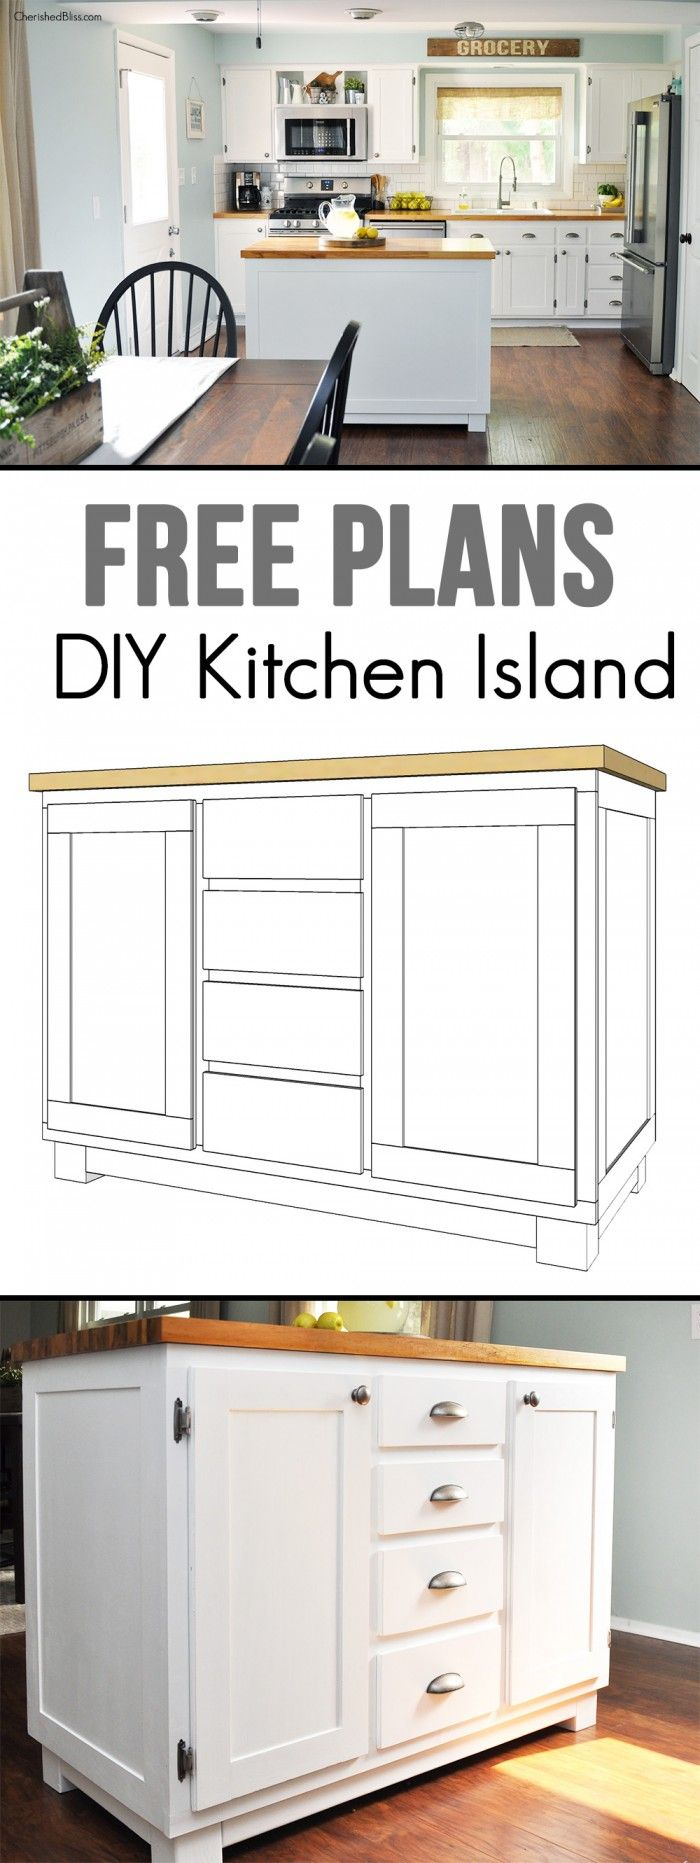 How to build a diy kitchen island diy kitchen island you ve and get the kitchen youve always dreamed of by building this diy kitchen island its easy to create and provides great storage get the free plans at solutioingenieria Image collections